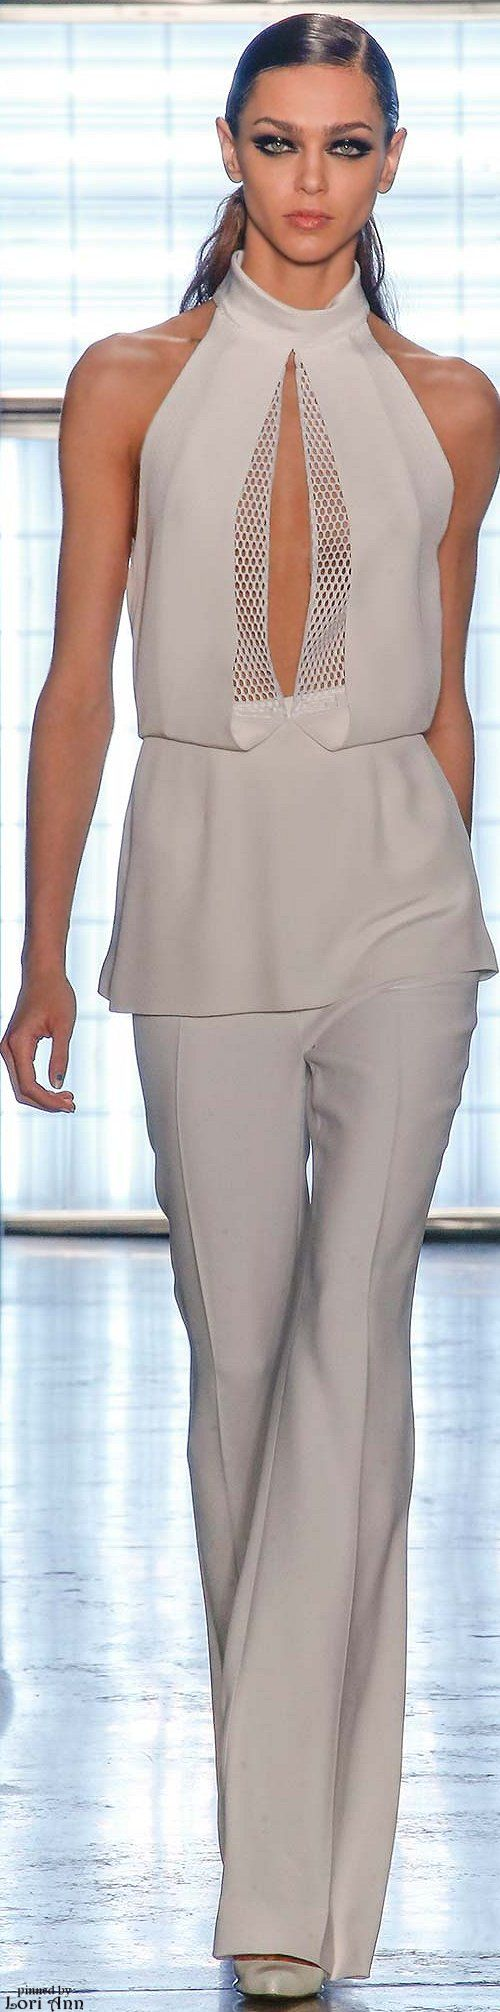 Cushnie et Ochs Fall 2015 RTW http://www.style.com/slideshows/fashion-shows/fall-2015-ready-to-wear/cushnie-et-ochs/collection/6